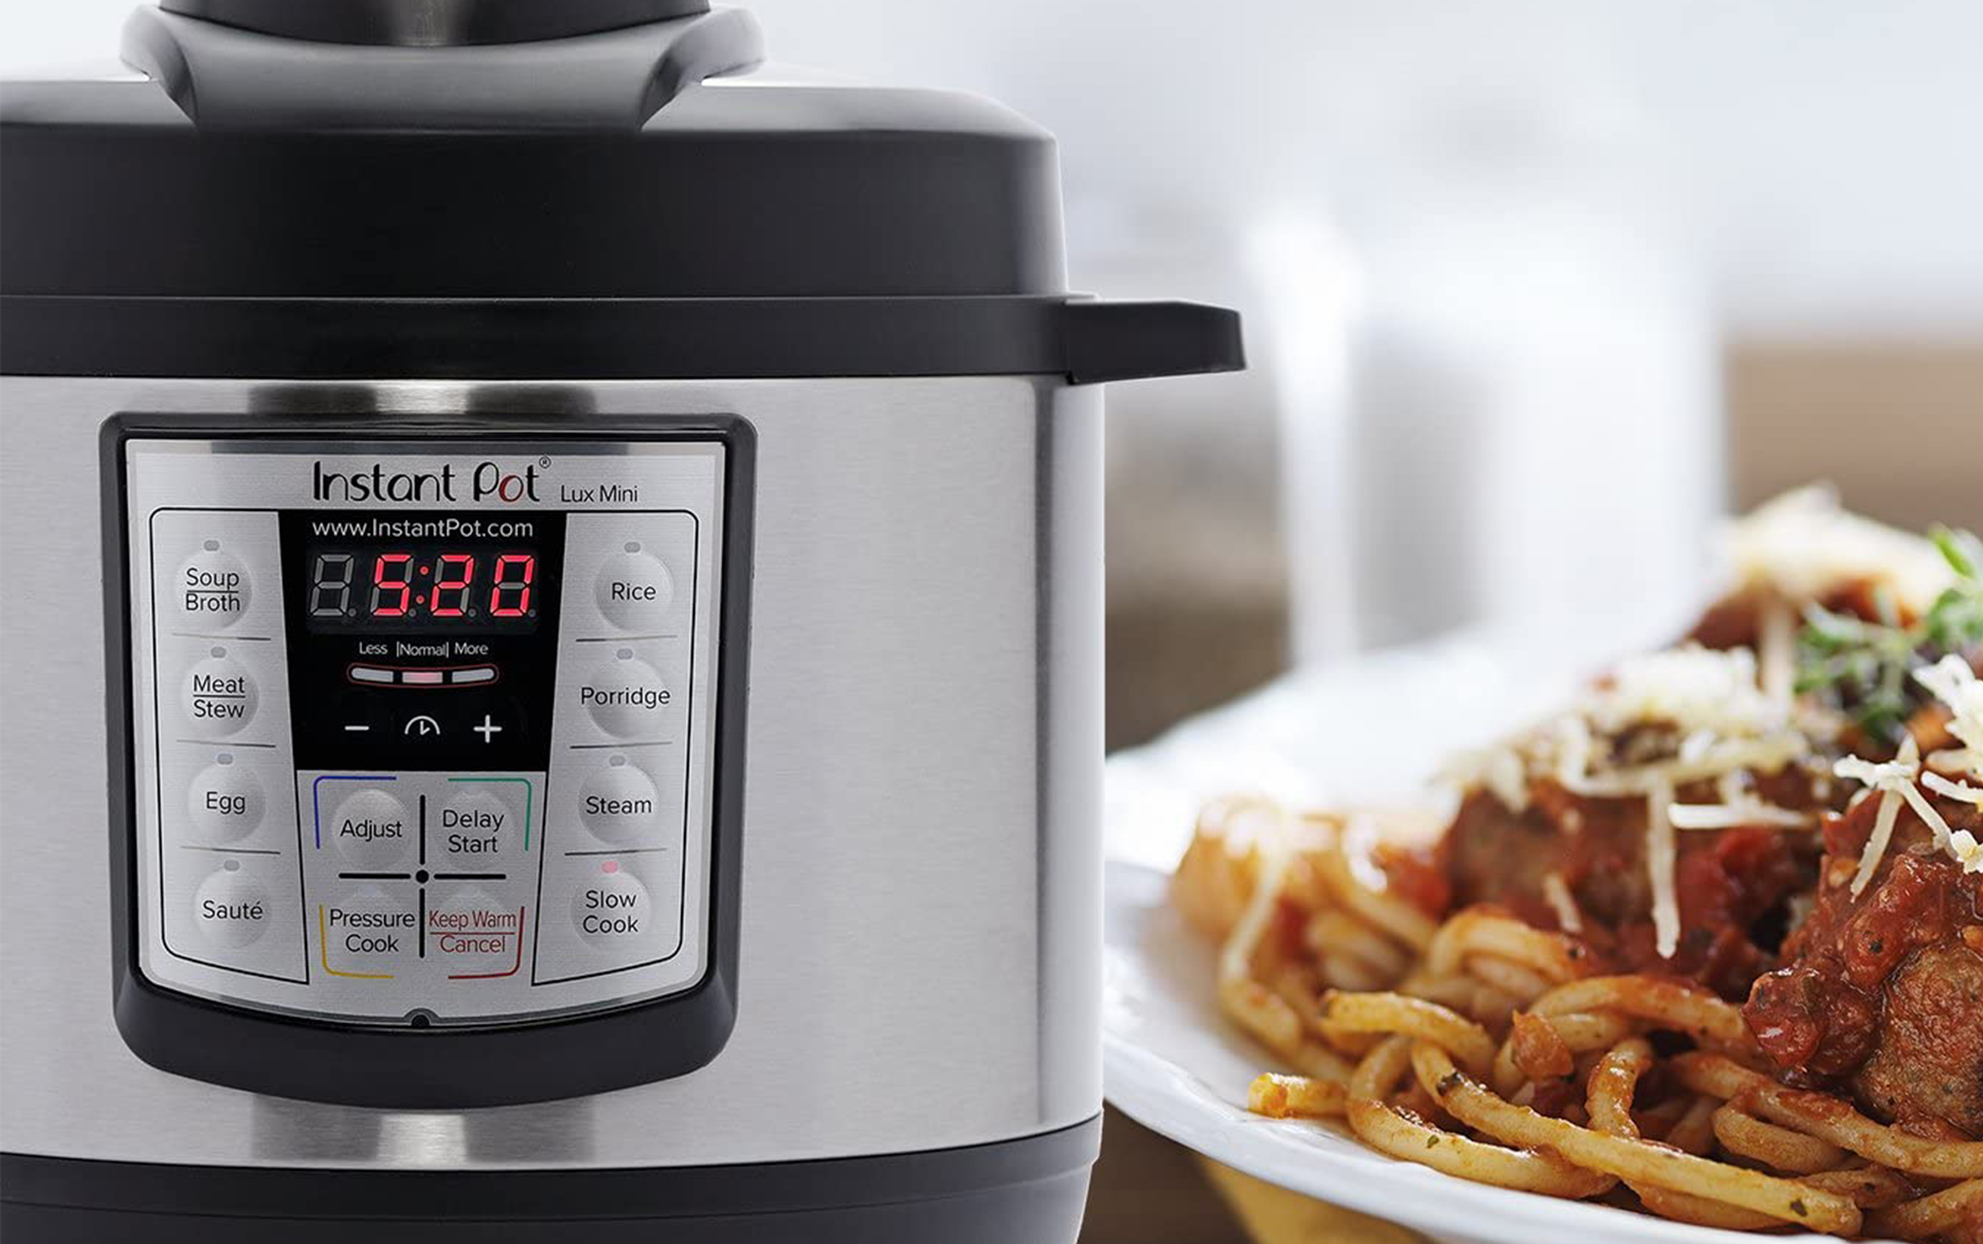 Instant pot with a bowl of spaghetti nearby